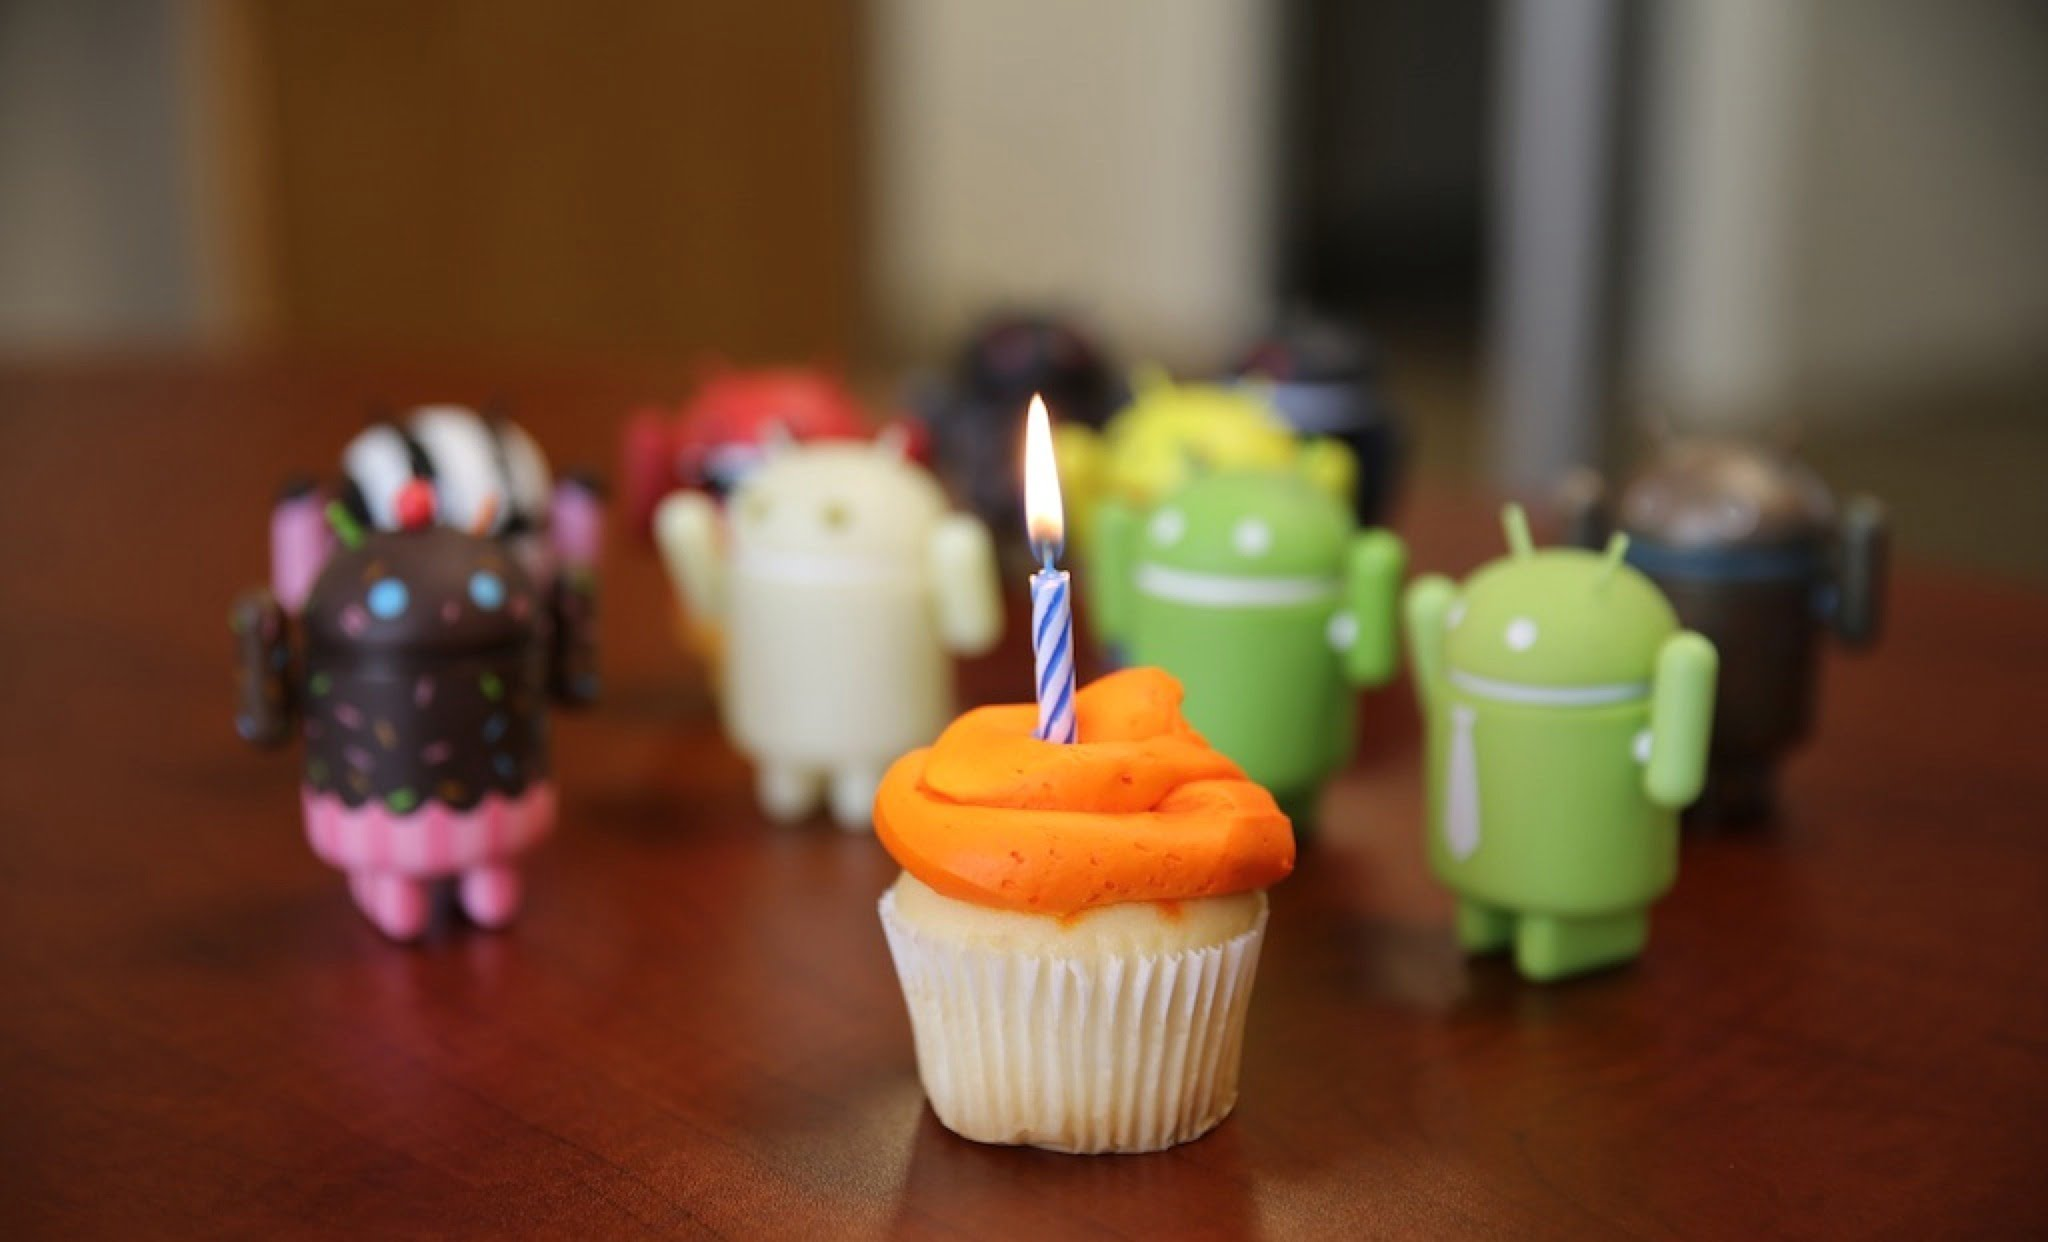 10th Anniversary of Android OS